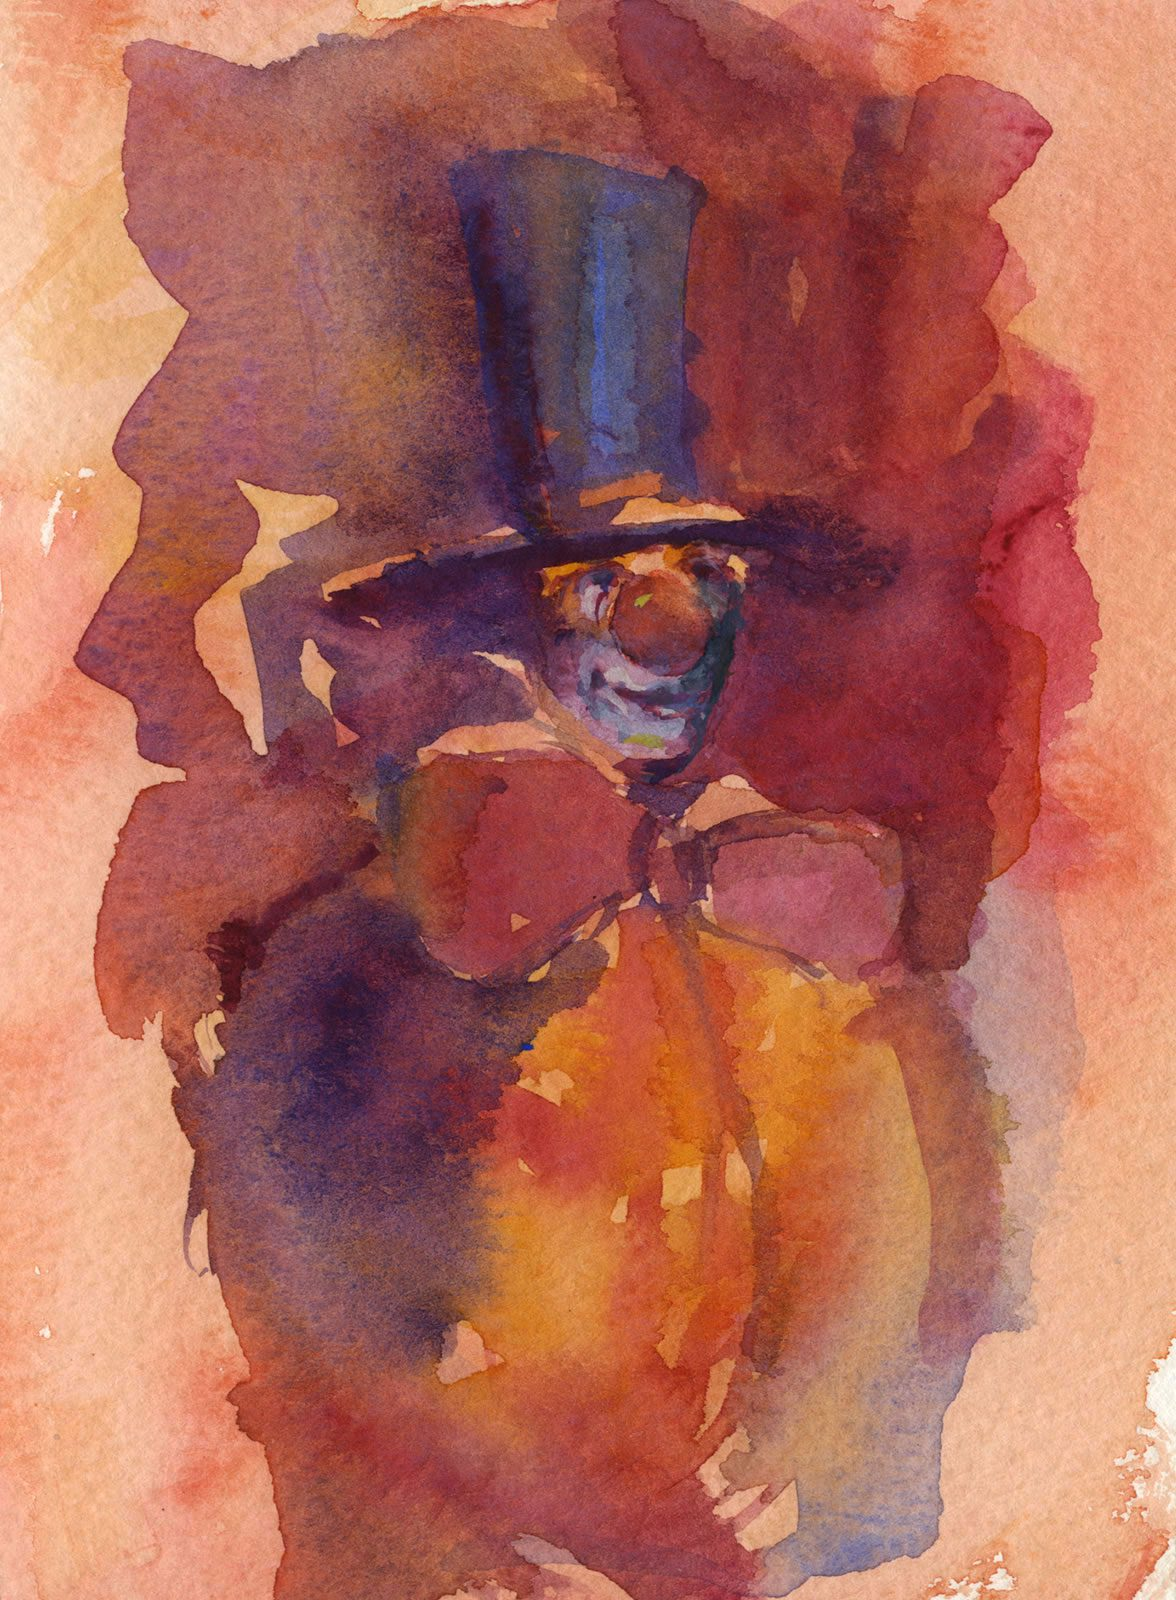 Watercolour sketch of clown character by East Yorkshire artist Stewart Taylor